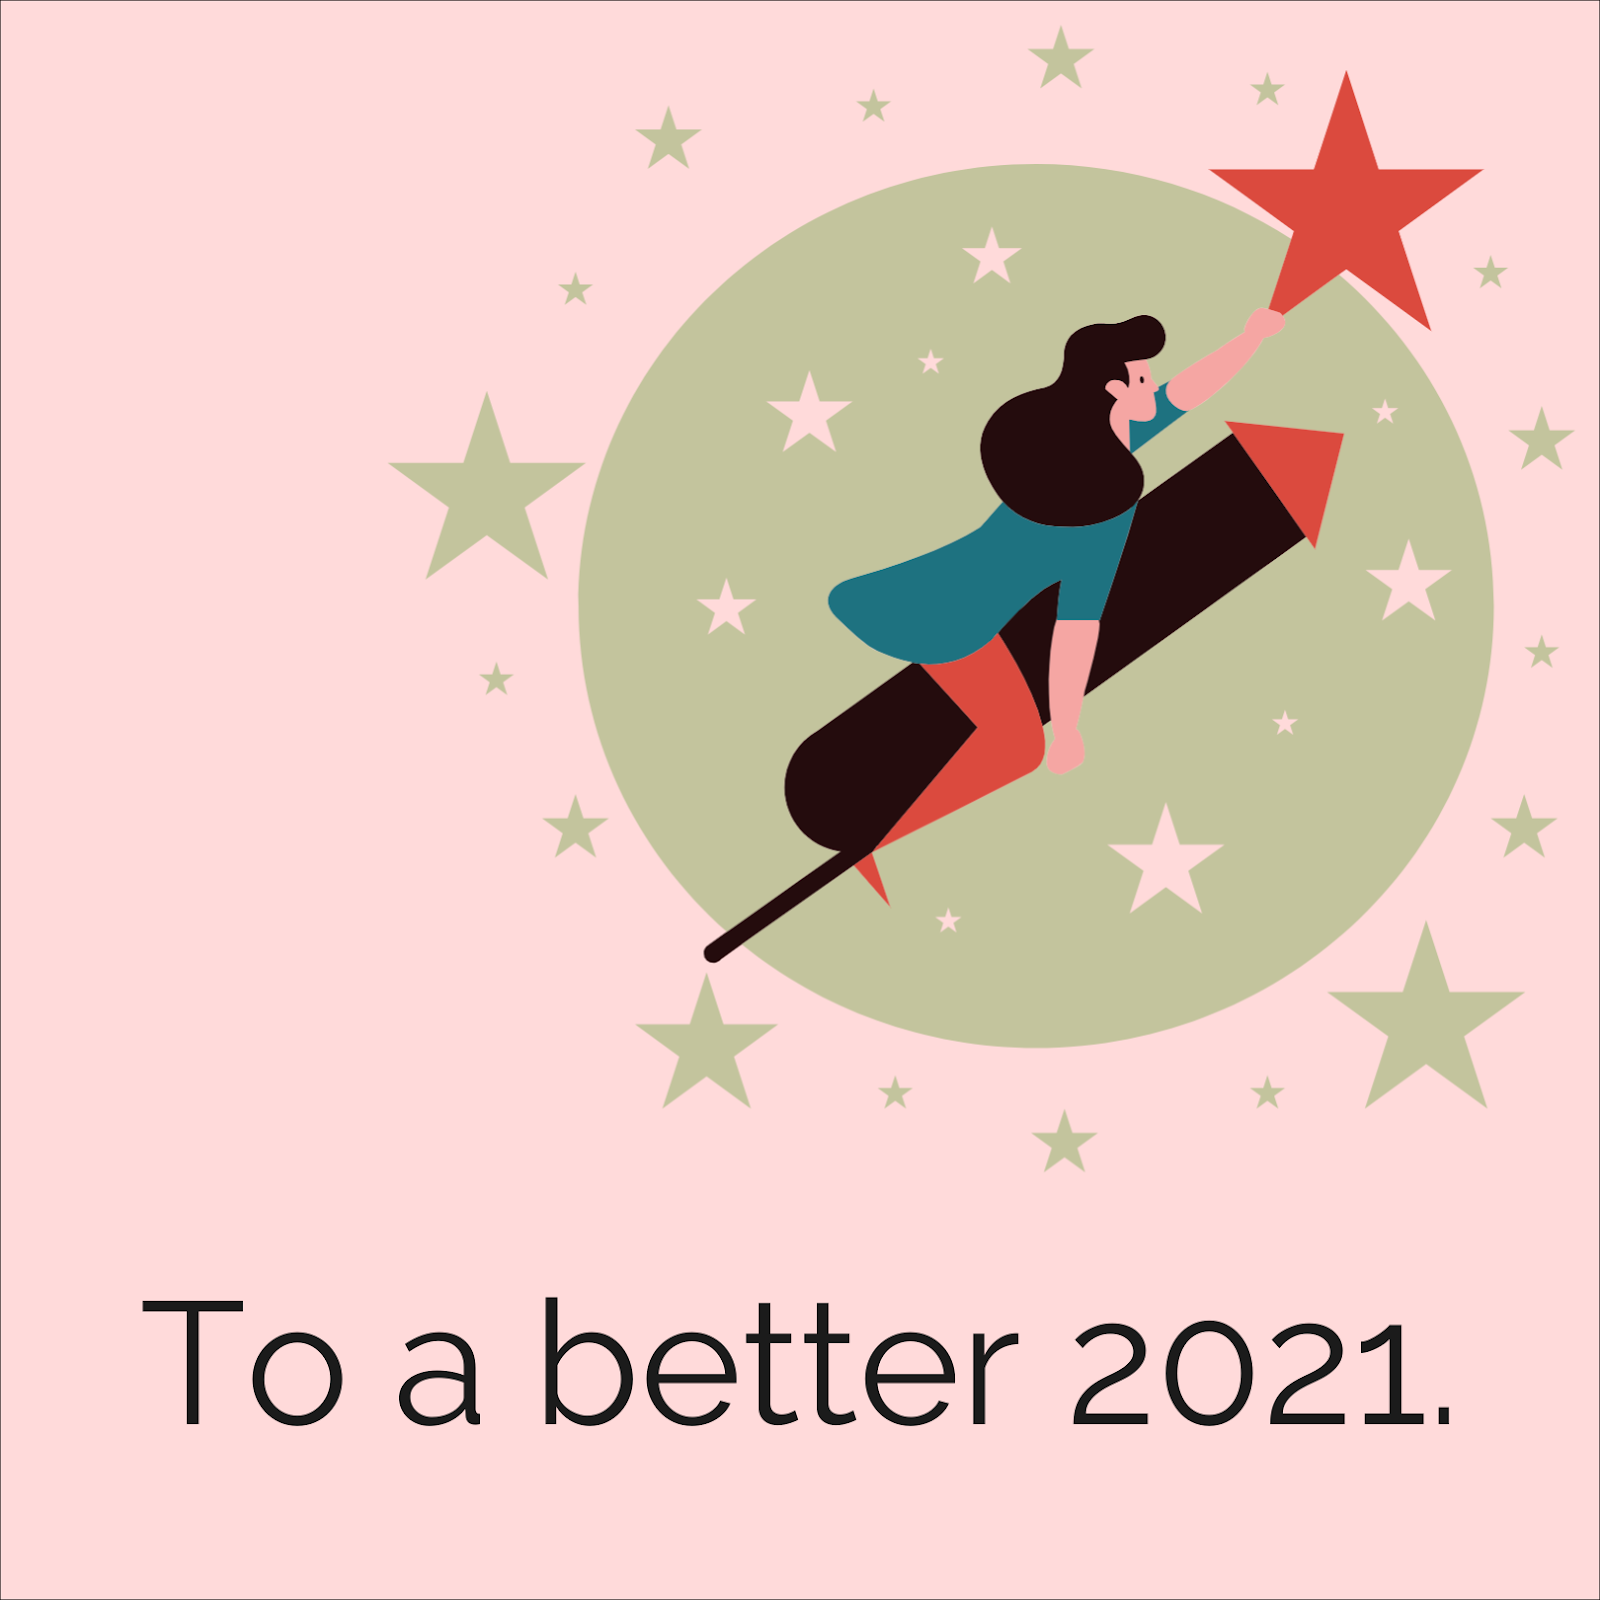 Let's get better in the new year of 2021.